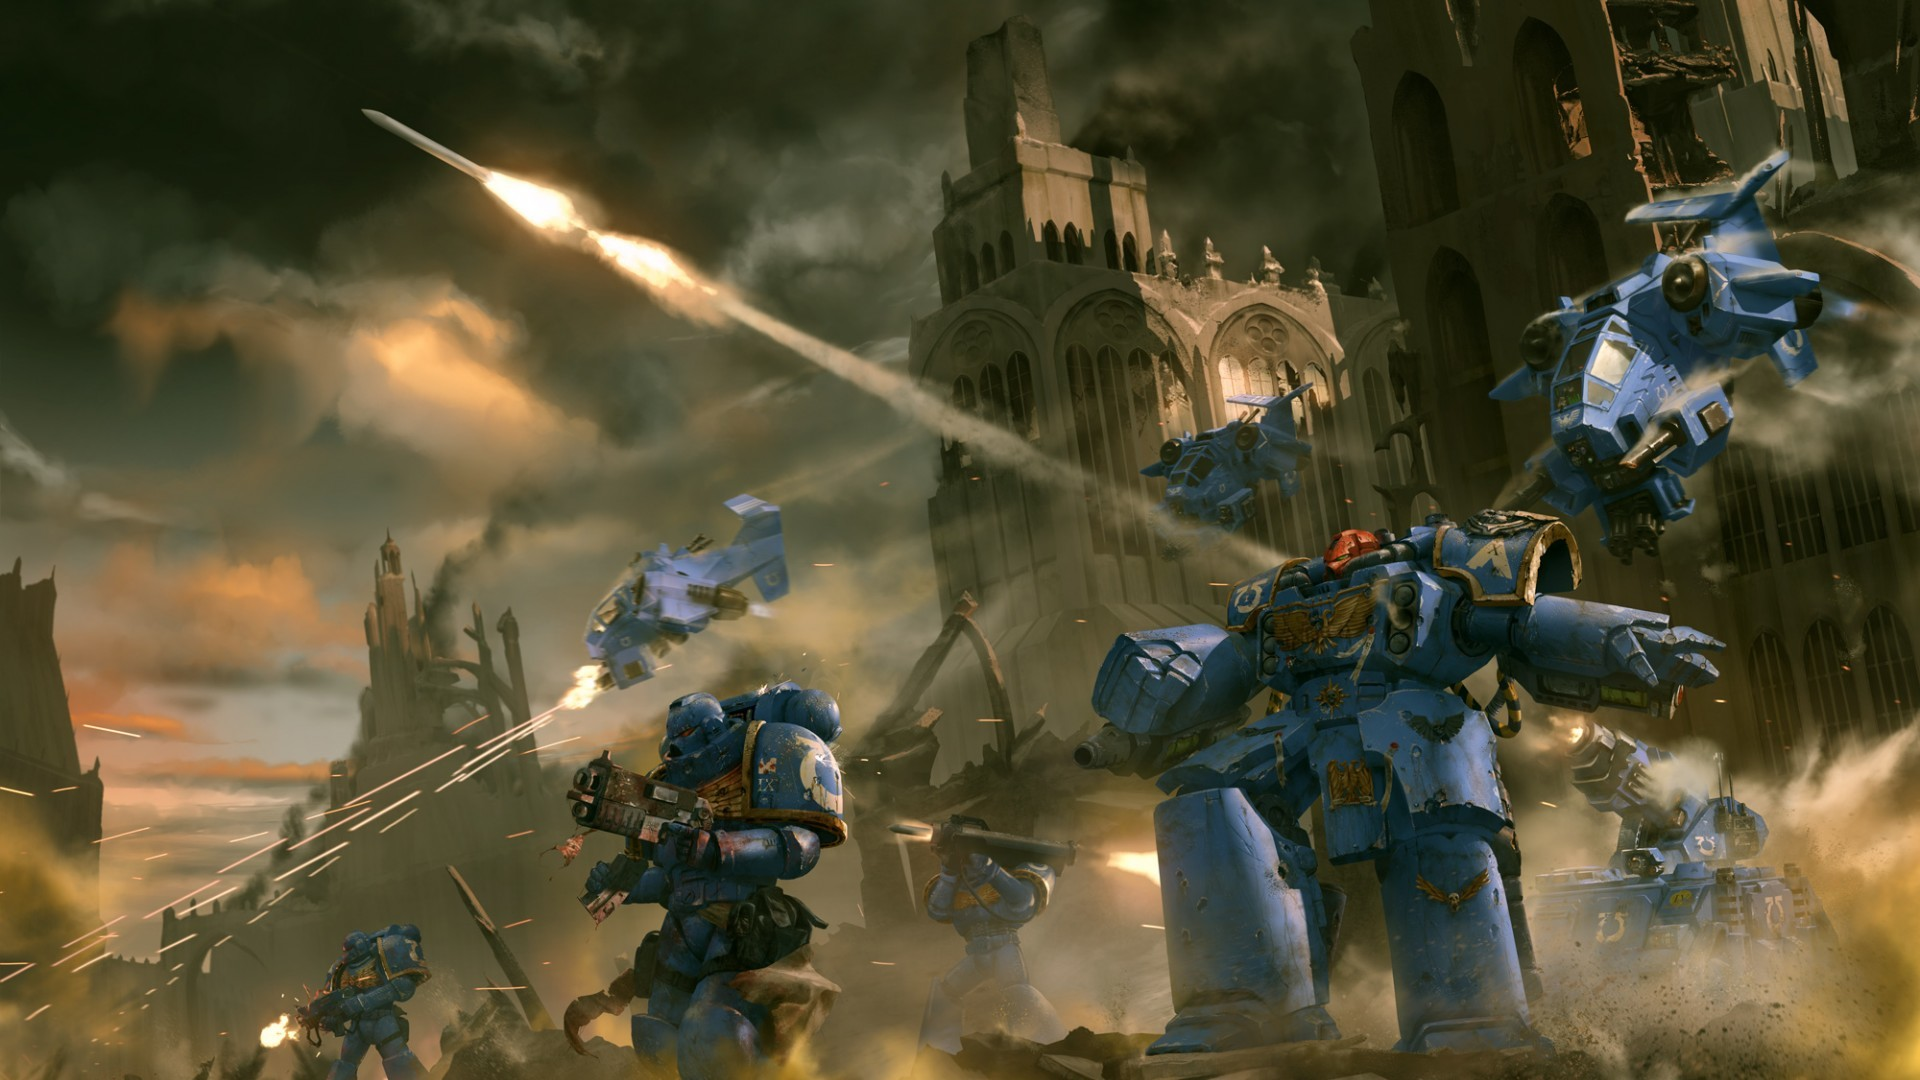 Res: 1920x1080, Download now full hd wallpaper warhammer space marine ruin battle ...